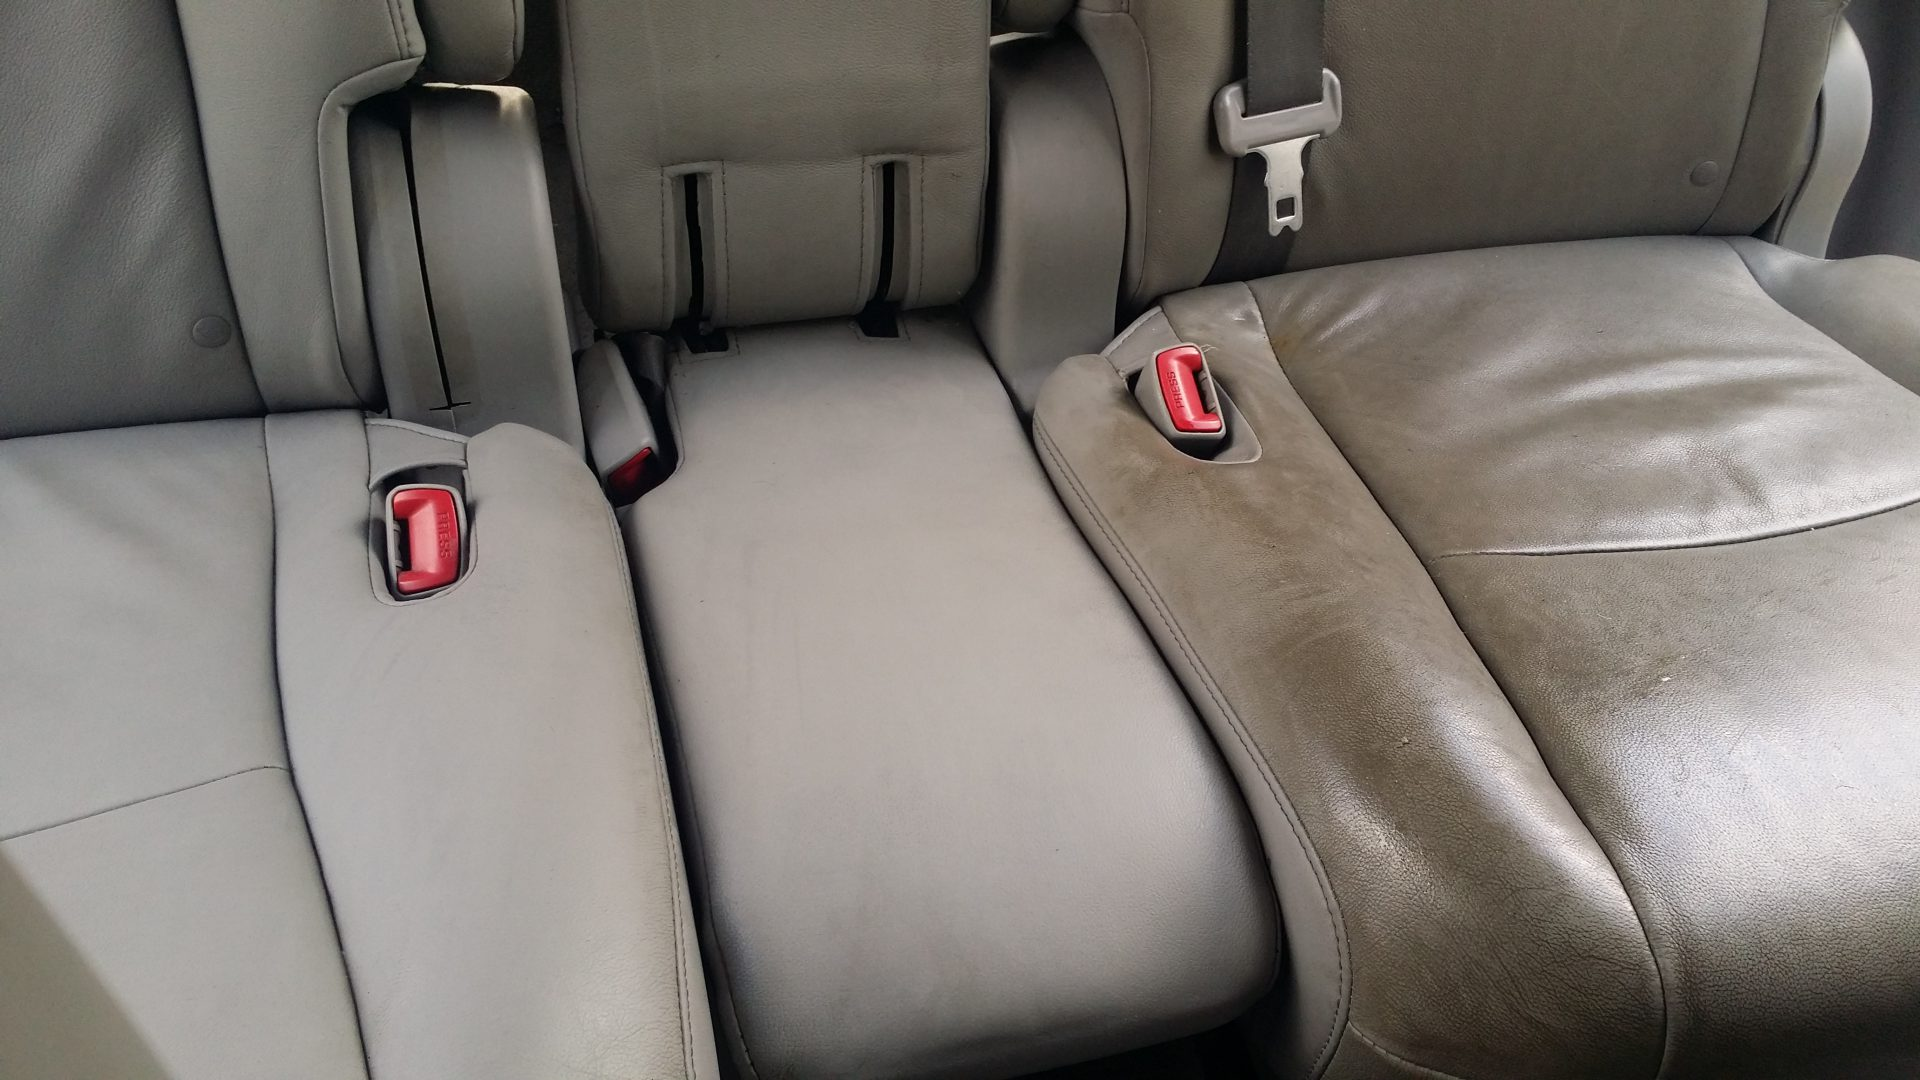 steam cleaning leather car seats